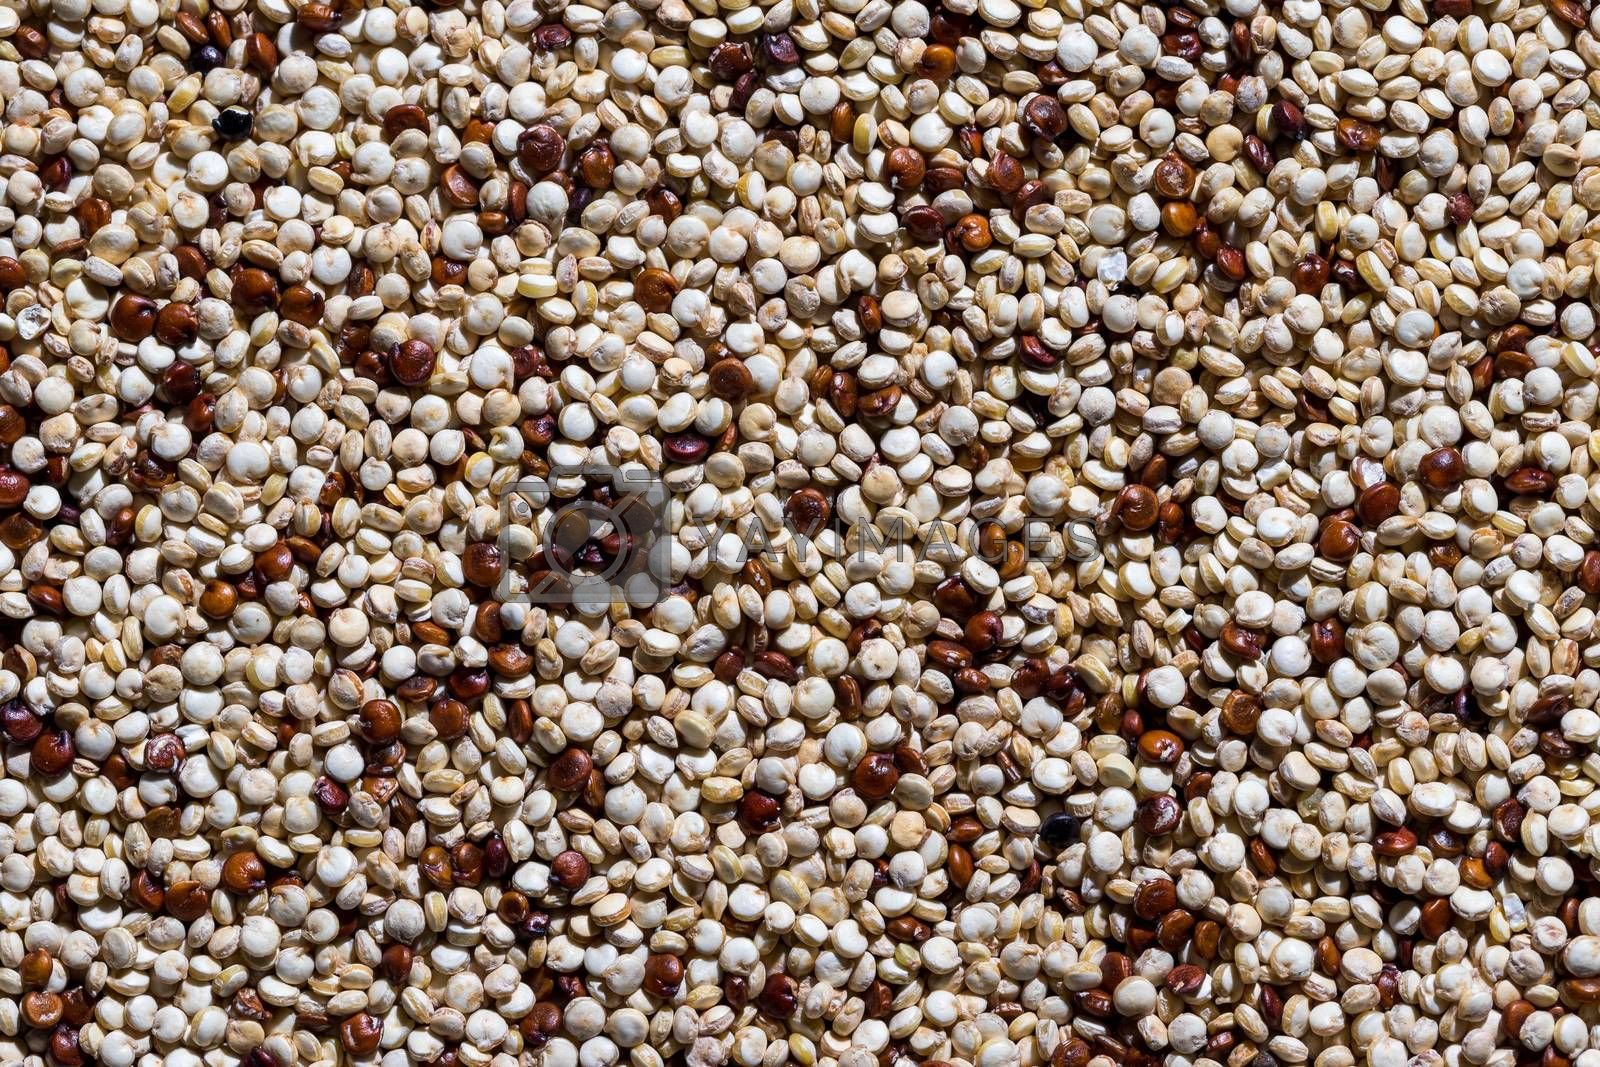 An overhead view of an uncooked mixture of red and white quinoa. Food texture.